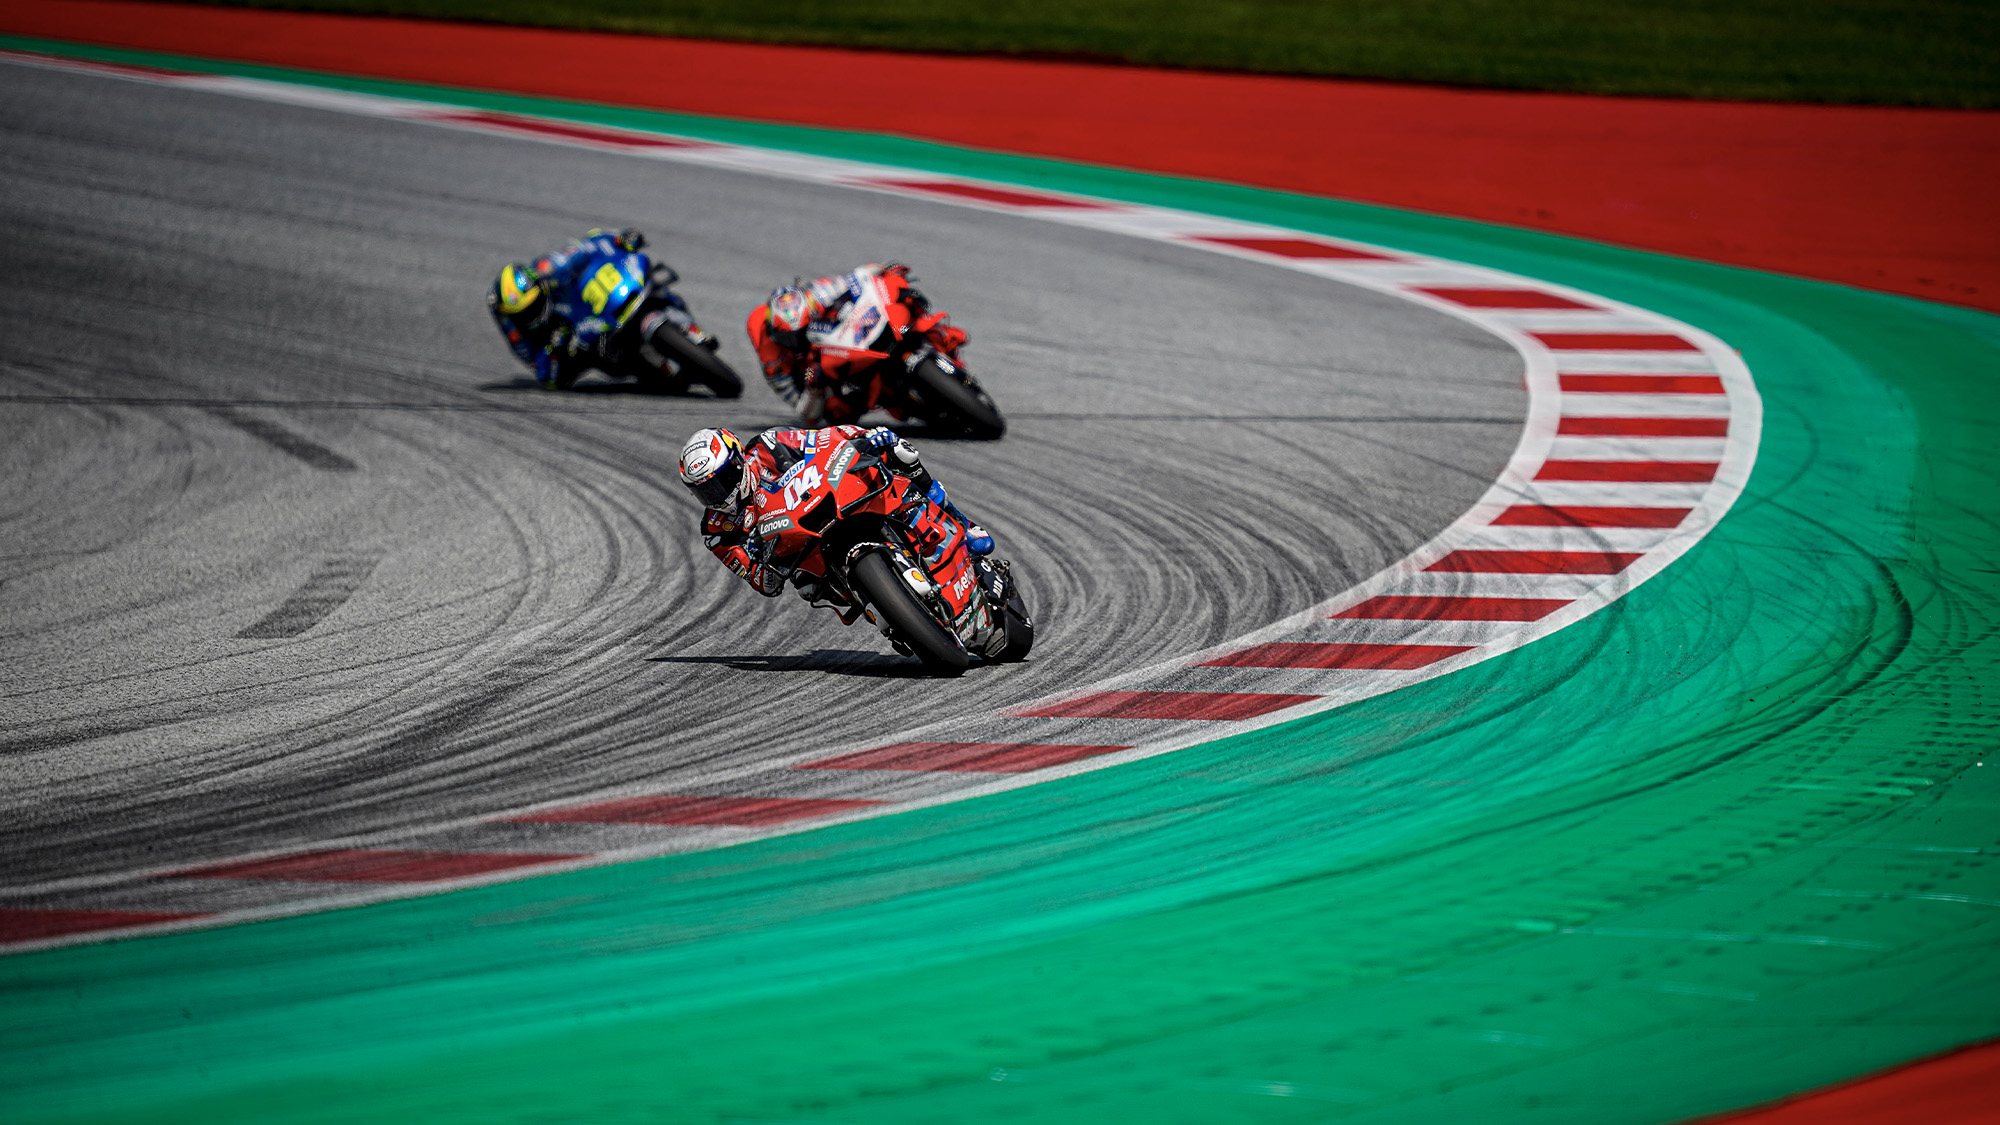 Andrea Dovizioso Jack Miller and Joan Mir during the 2020 MotoGP Austrian Grand Prix at the Red Bull Ring